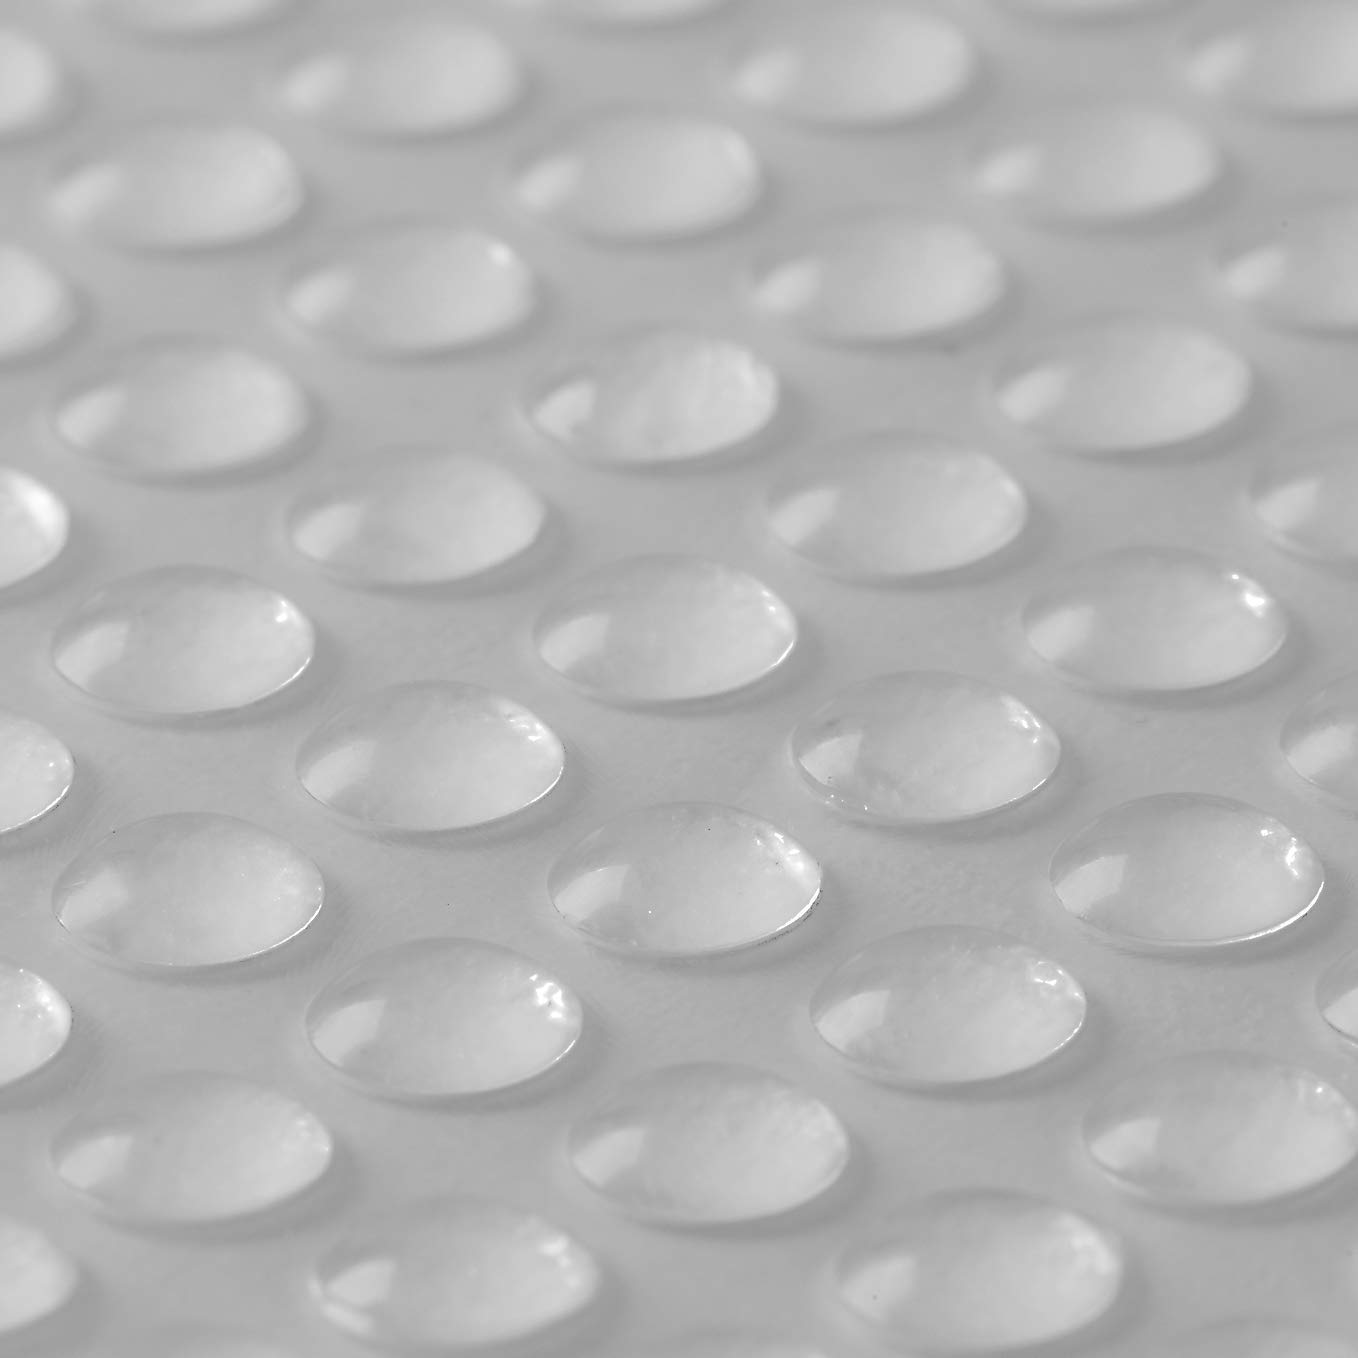 "Ehanmu Self-Adhesive Clear Rubber Feet Tiny Bumpons 0.25"" in Diameter x 0.079"" Height PACK/100pcs (6x2mm 100pcs)"